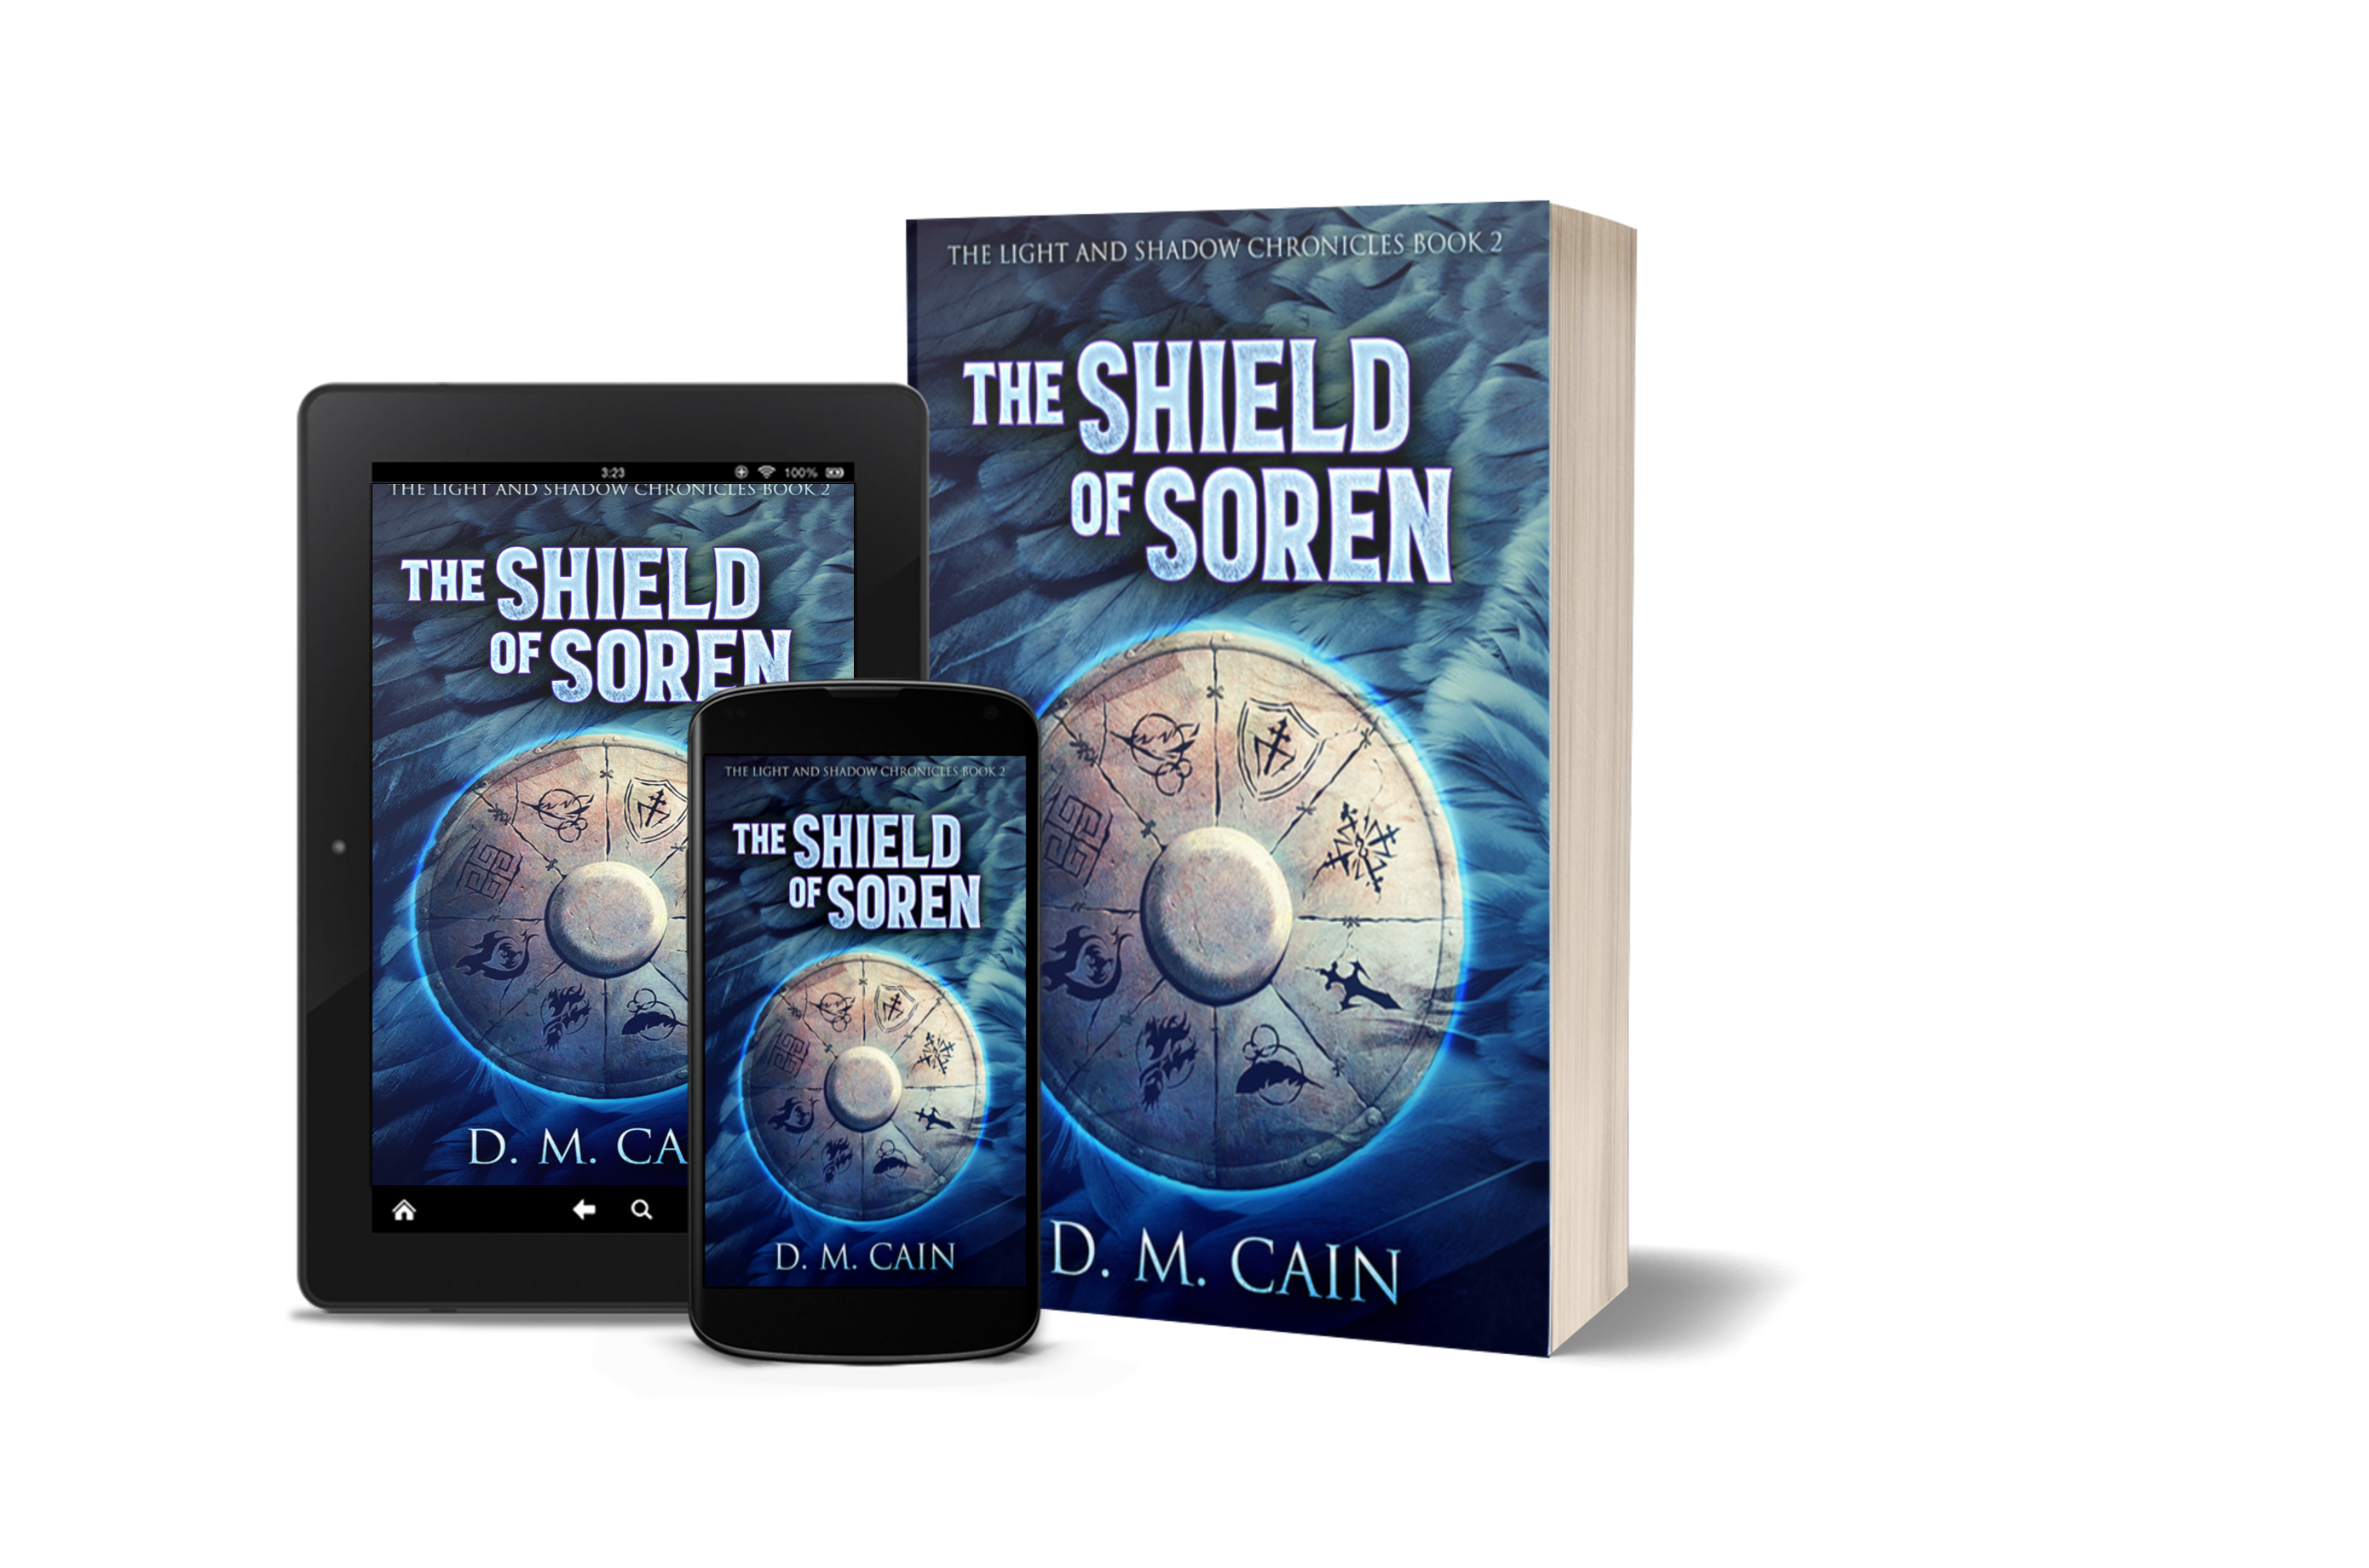 The Shield of Soren by D.M. Cain multiple formats image